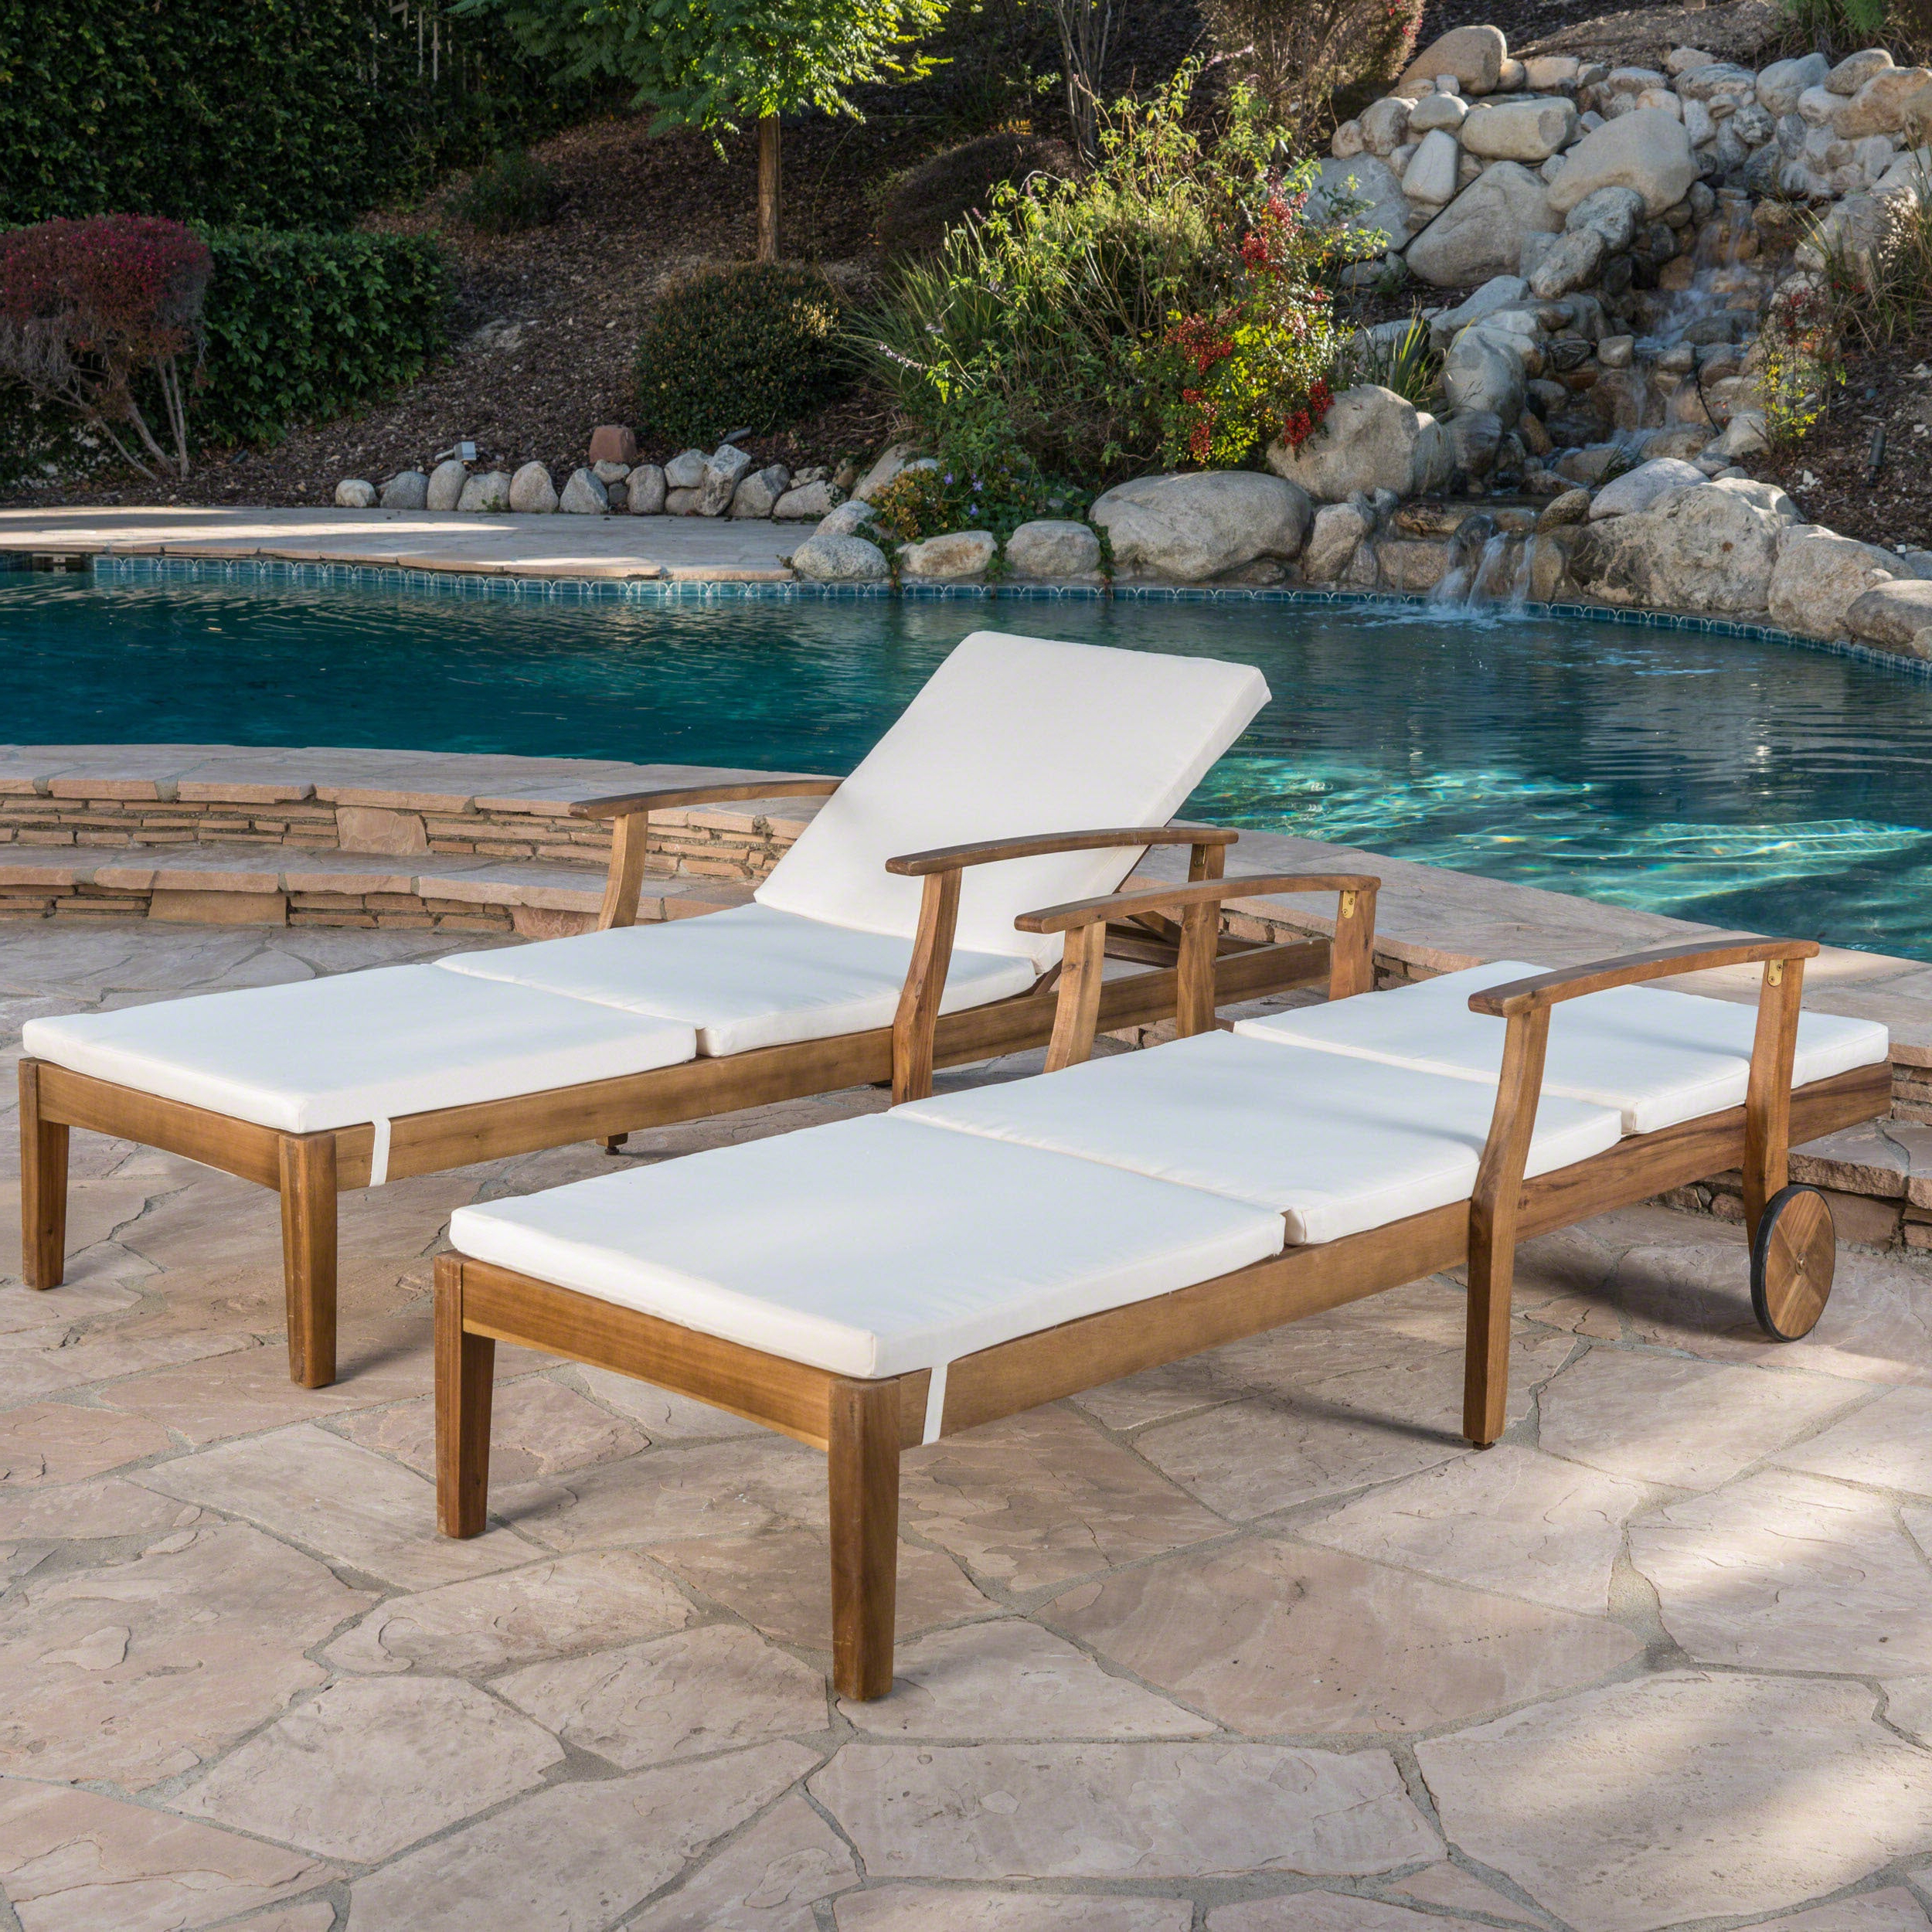 Perla Outdoor Acacia Wood Chaise Lounge With Cushion (Set Of 2) Christopher Knight Home For Latest Oudoor Modern Acacia Wood Chaise Lounges With Cushion (Gallery 1 of 25)